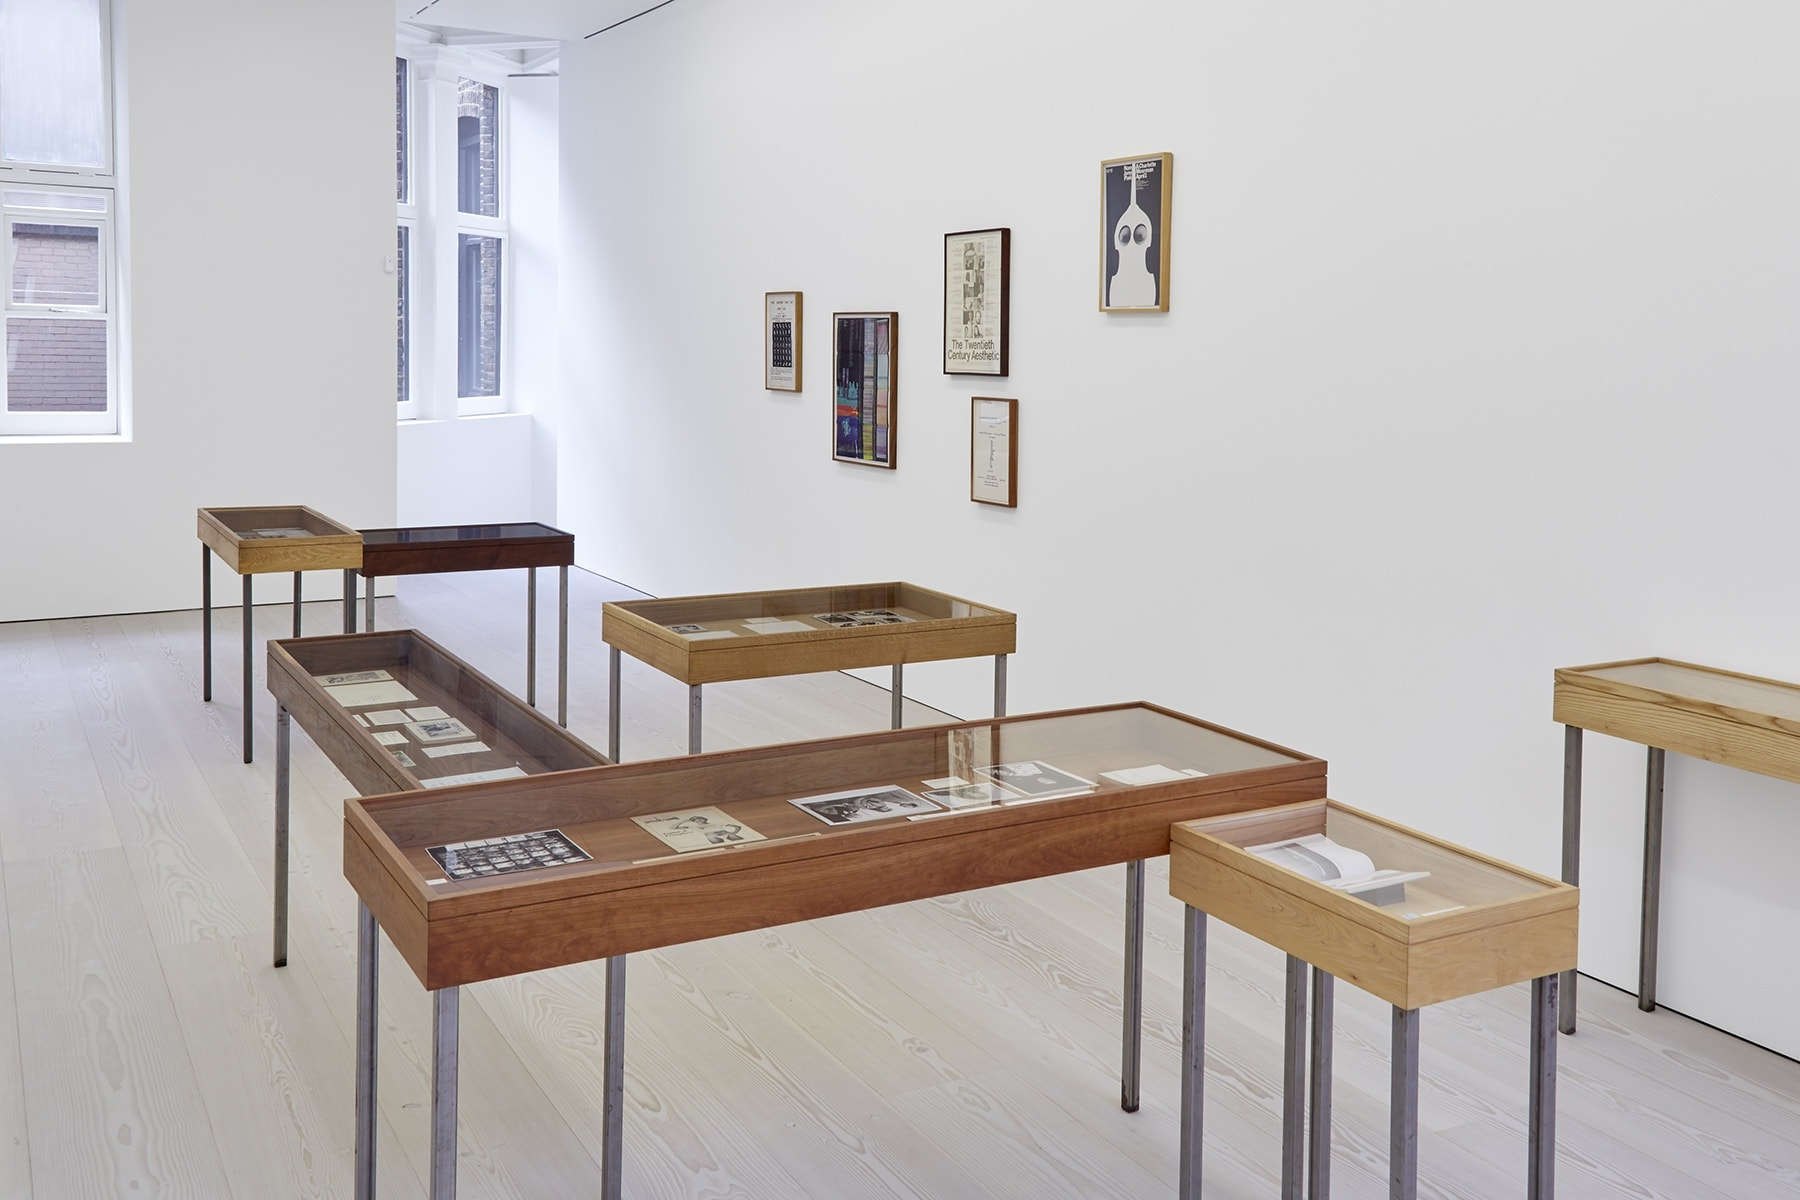 In a white space with light wood floors, several tables with glass tops act as display cases for various drawn works. Both colorful and black and white paintings and prints hang from the walls.